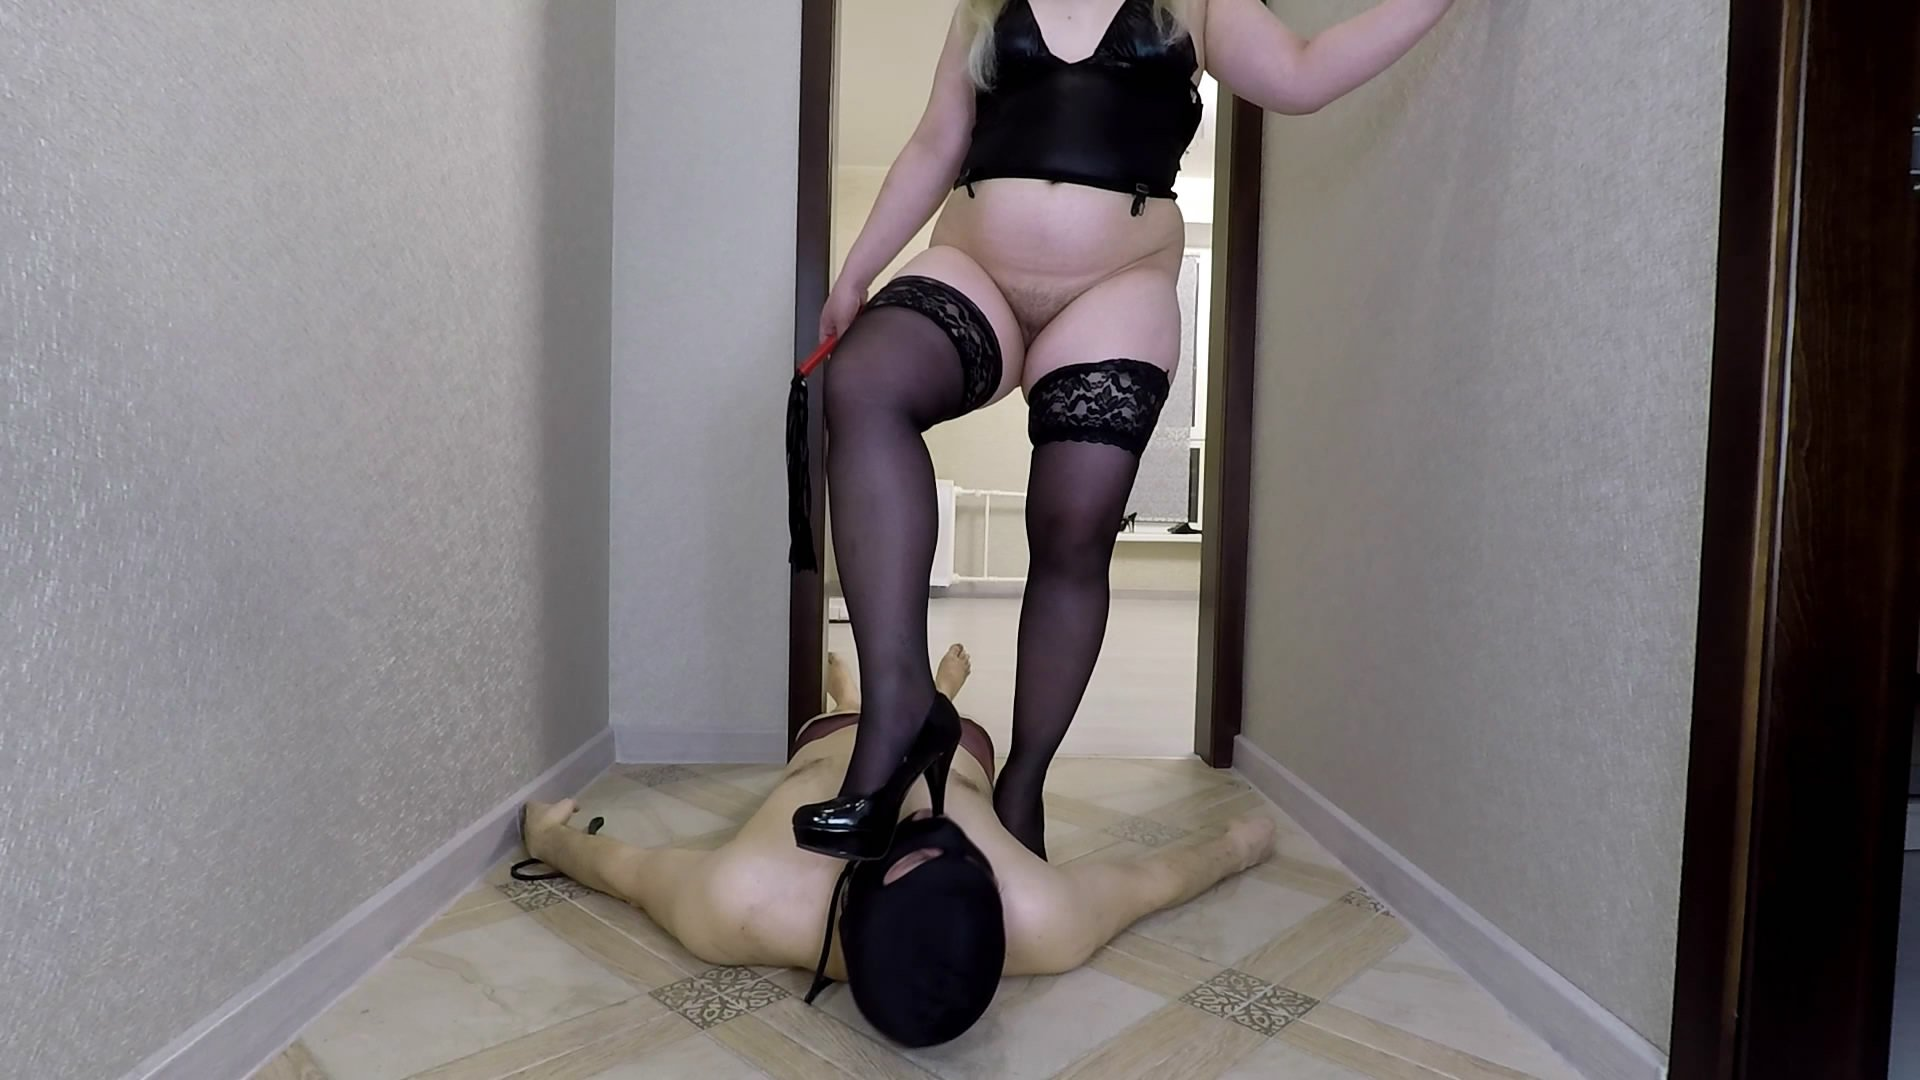 Tortured & Used Toilet Slave starring in video cleopatra ($15.99 ScatShop) – Groups/Couples